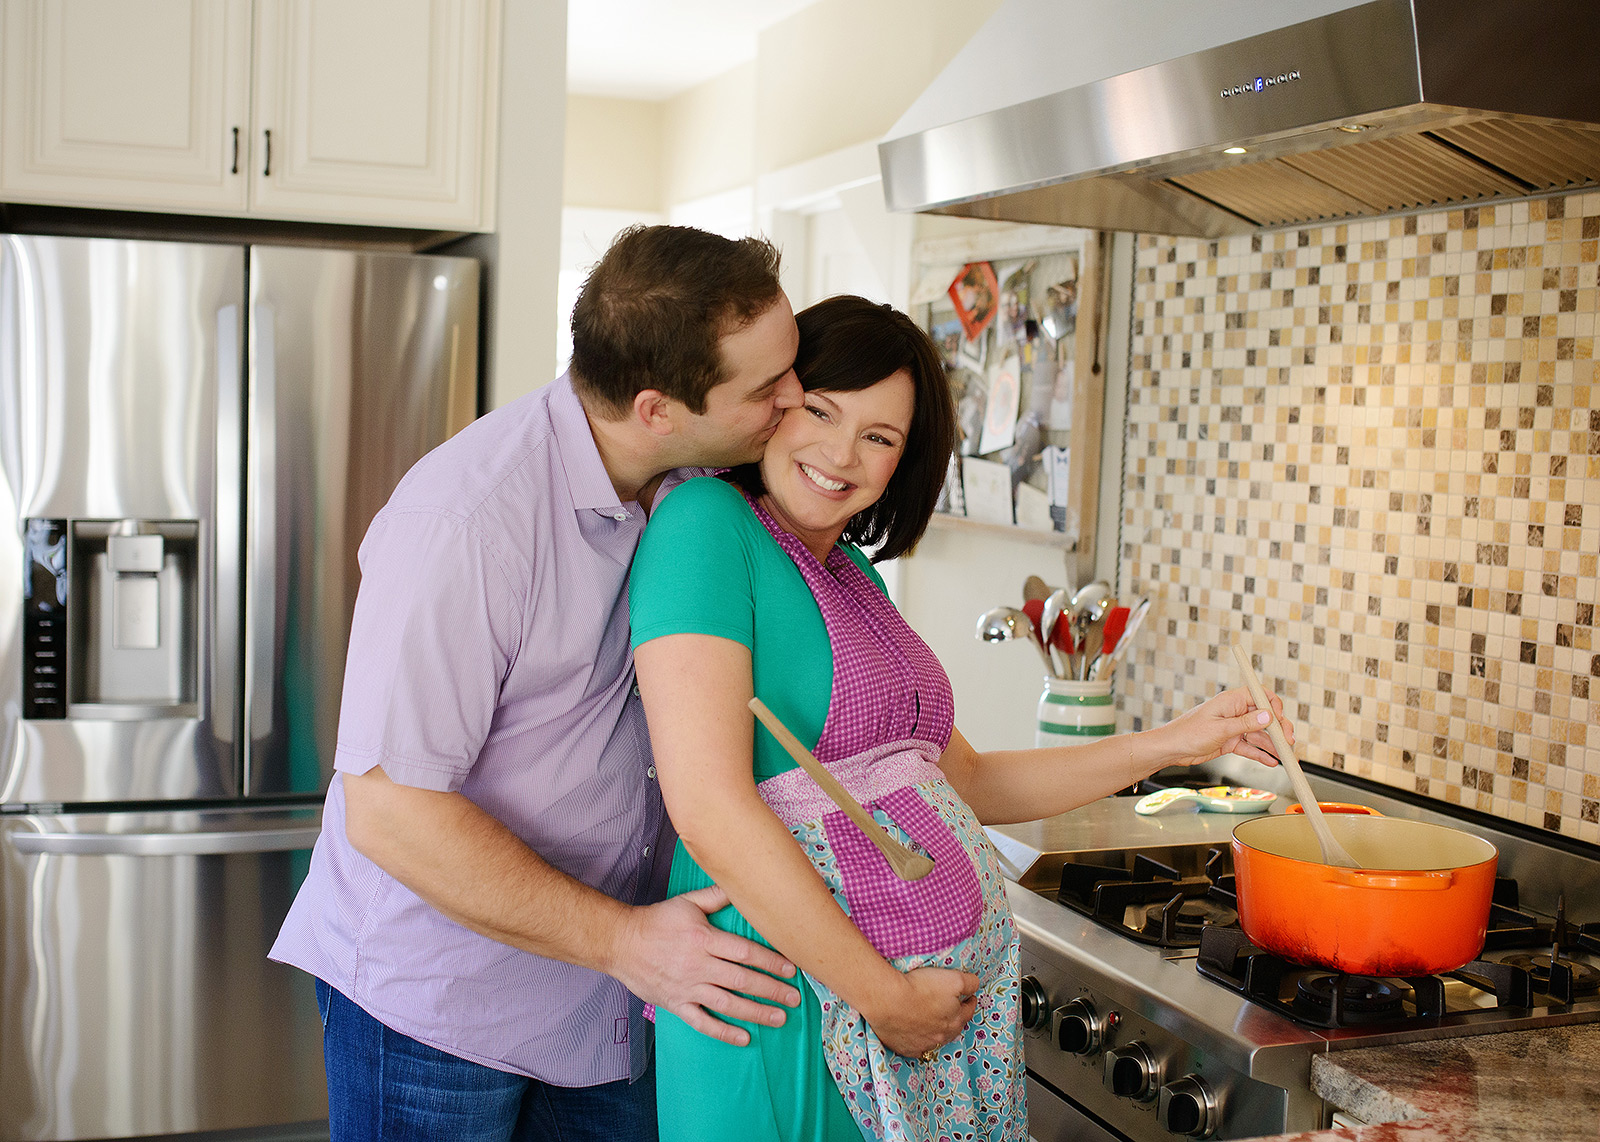 Pregnant woman wearing apron and cooking in kitchen as husband kisses her